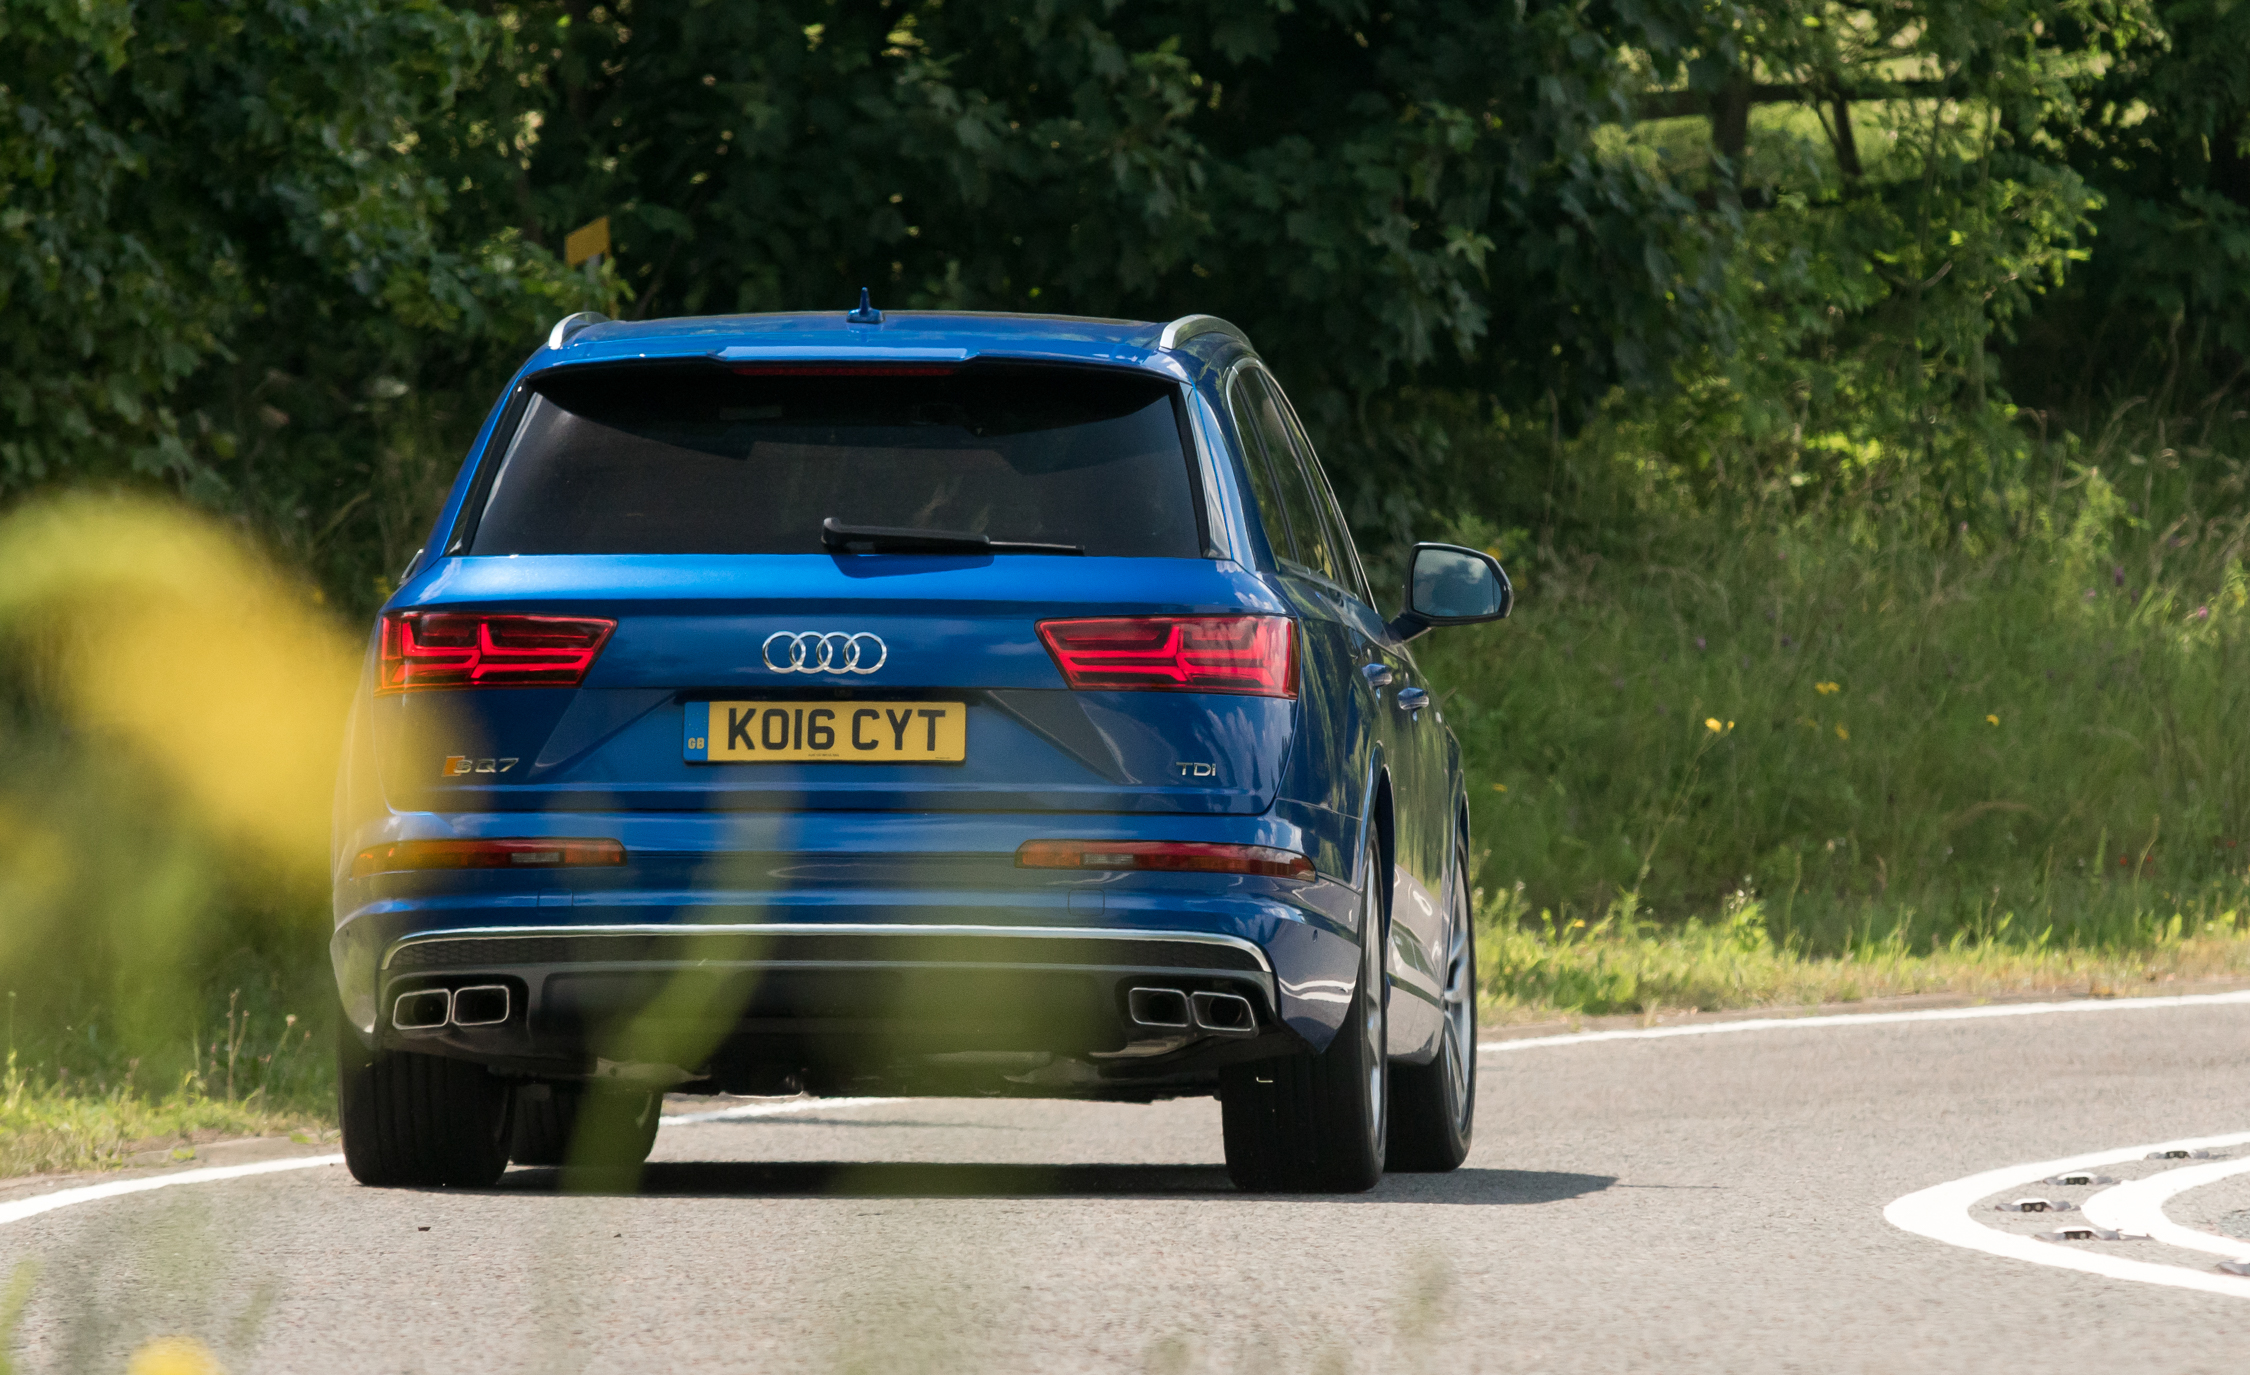 2017 Audi Sq7 Test Drive Rear View (Photo 15 of 15)